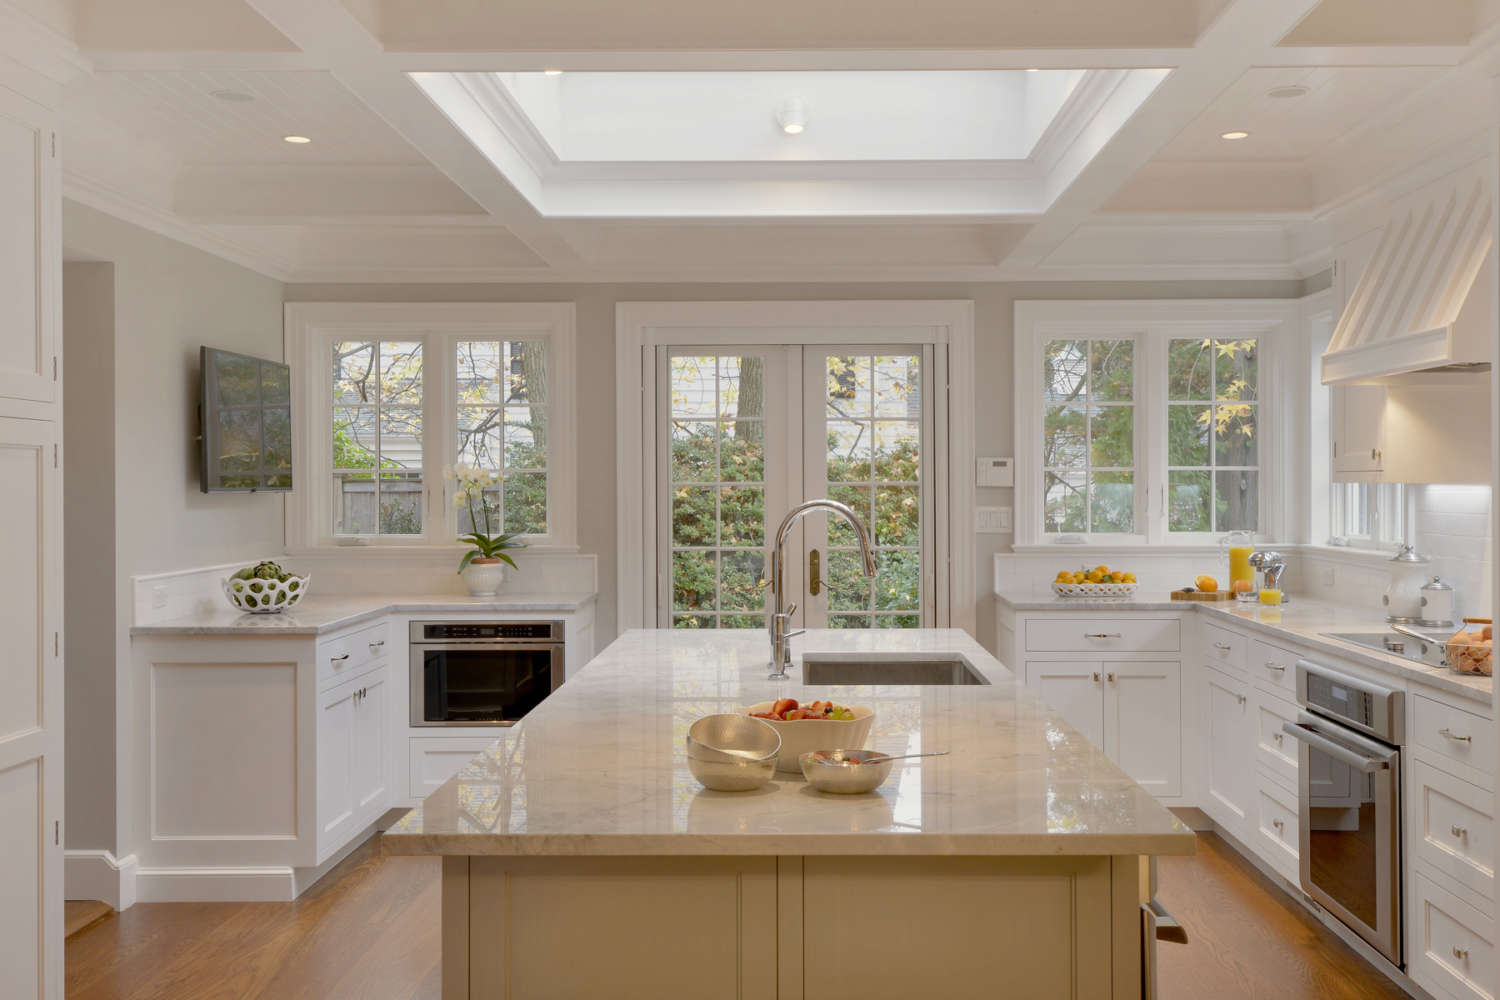 U-shaped kitchen with eat-at island and wood range hood. Features fully custom white painted Rutt Regency cabinets. Designed by Fabrice Garson of Bilotta Kitchens.